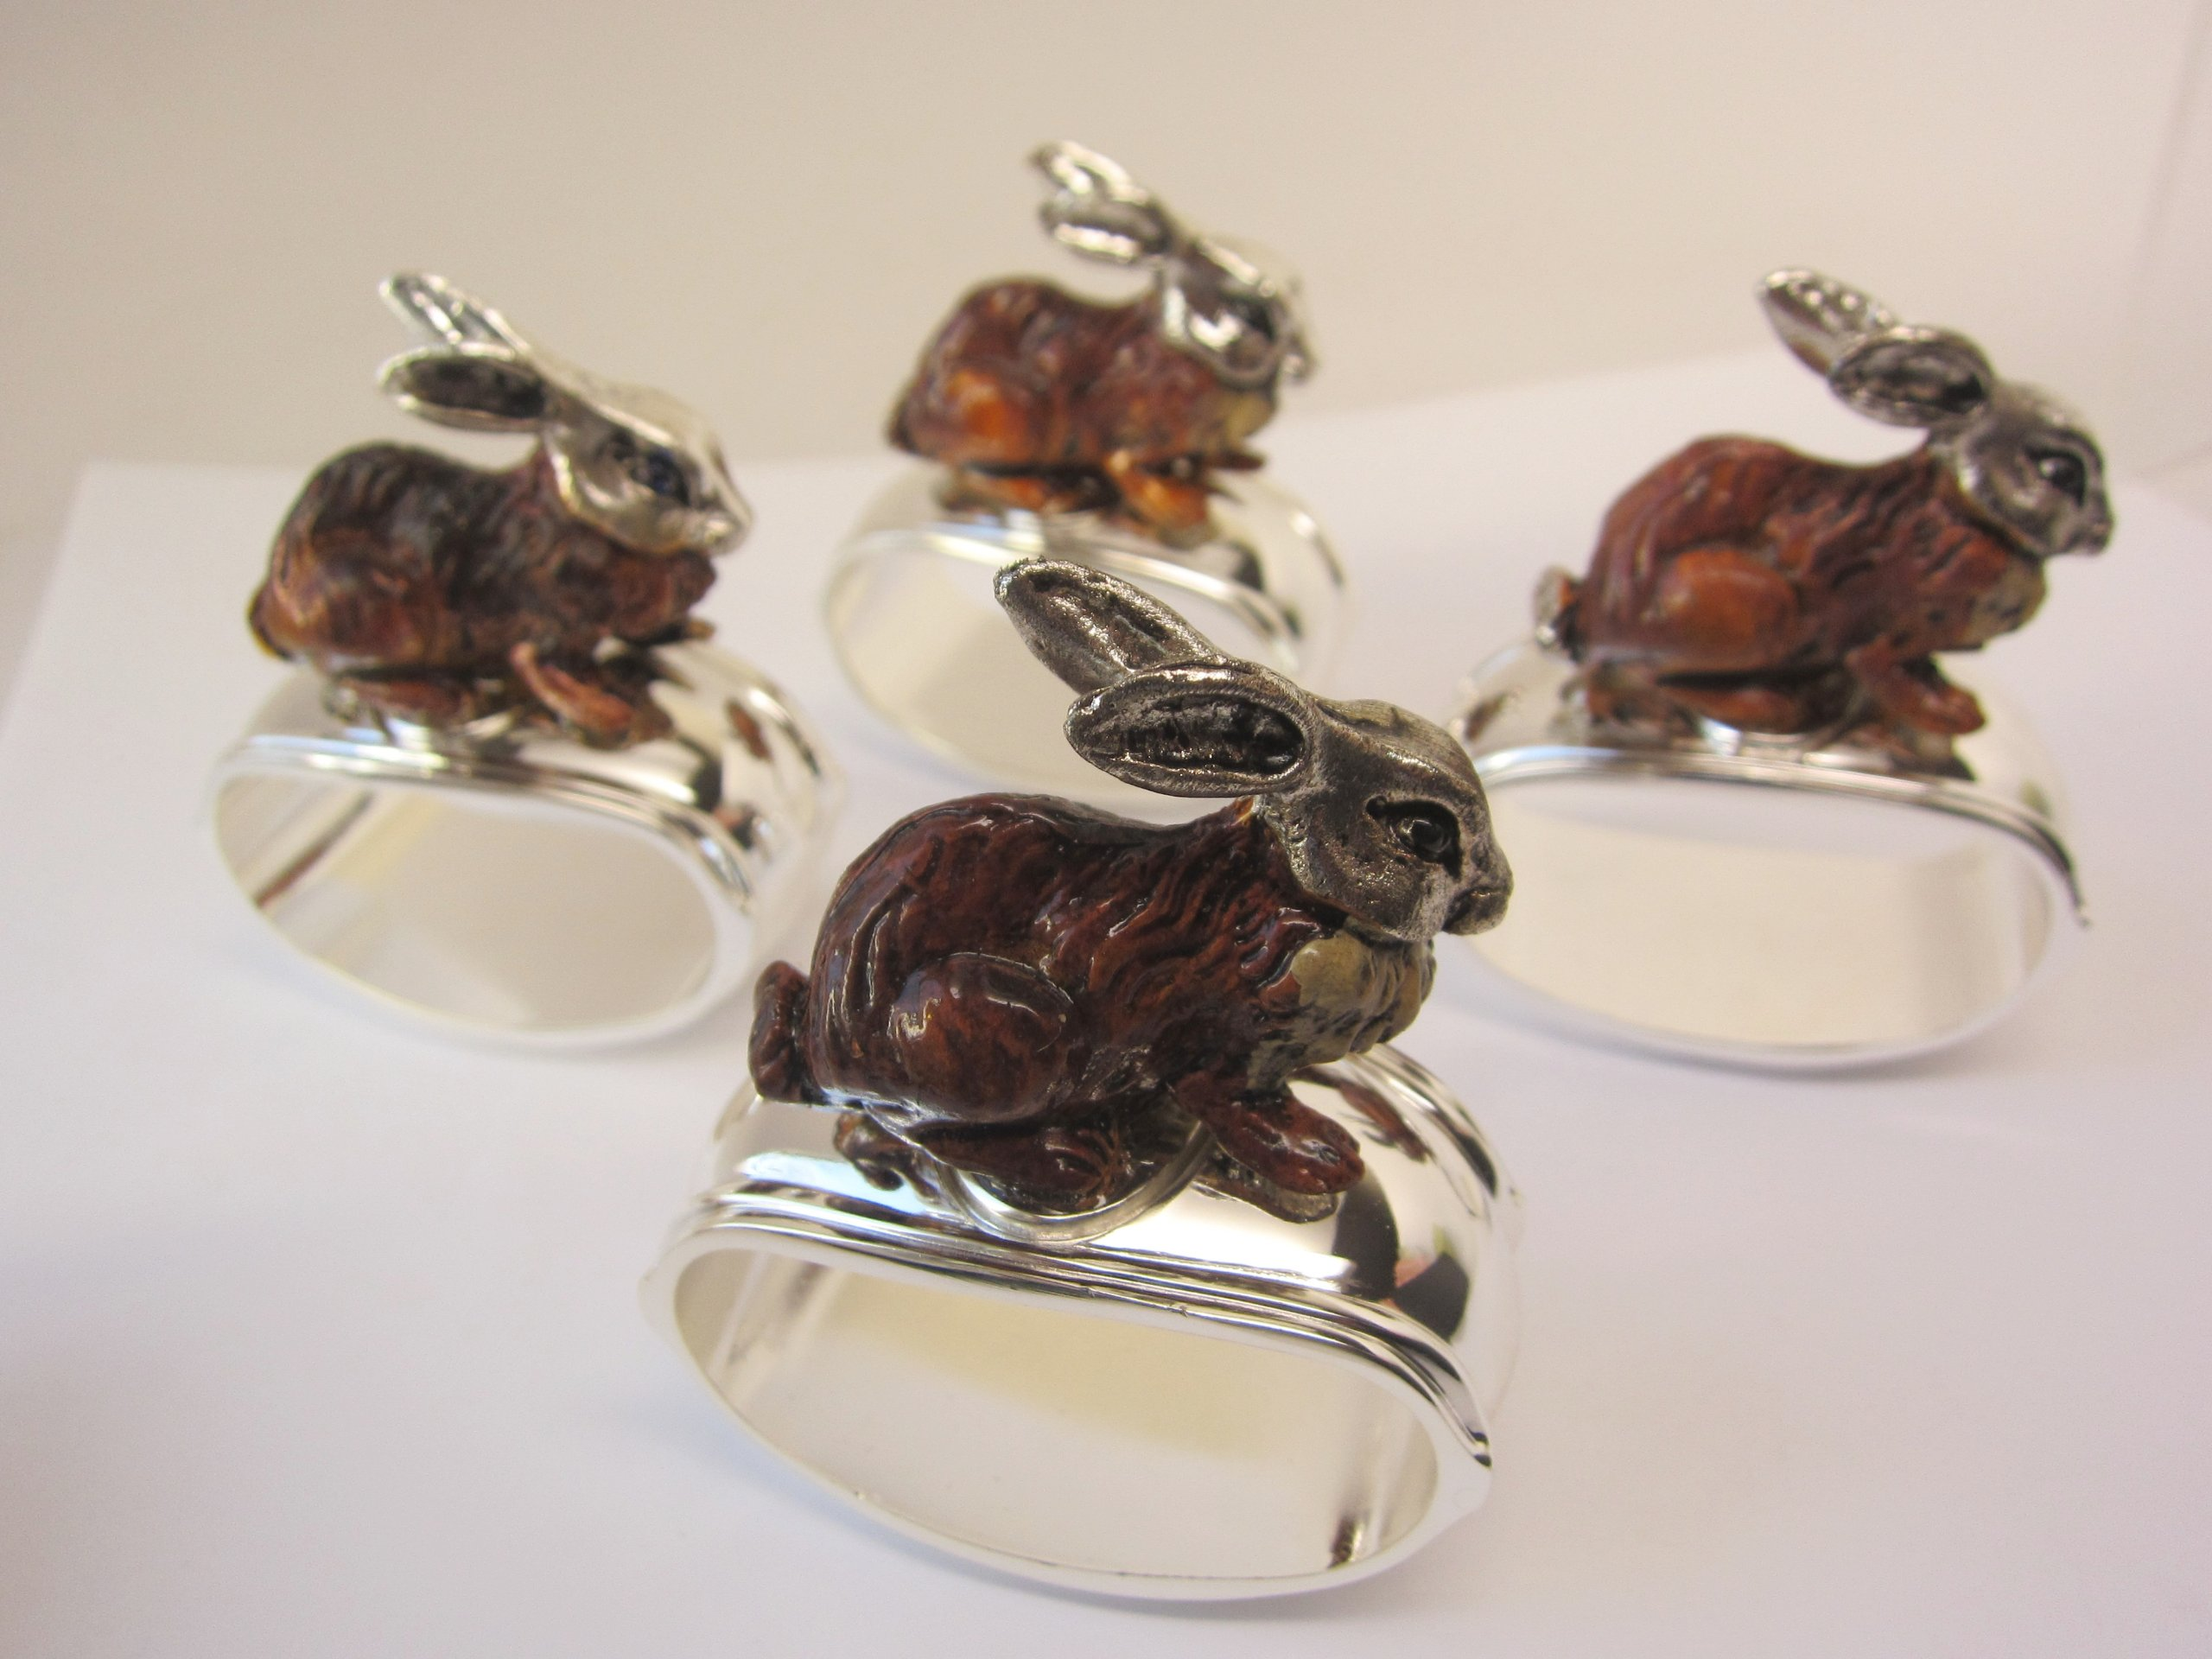 Hans Turnwald Set 4 Rabbit Bunny Signed Silverplate Figural Napkin Rings Easter Gift Box by Hans Turnwald (Image #2)